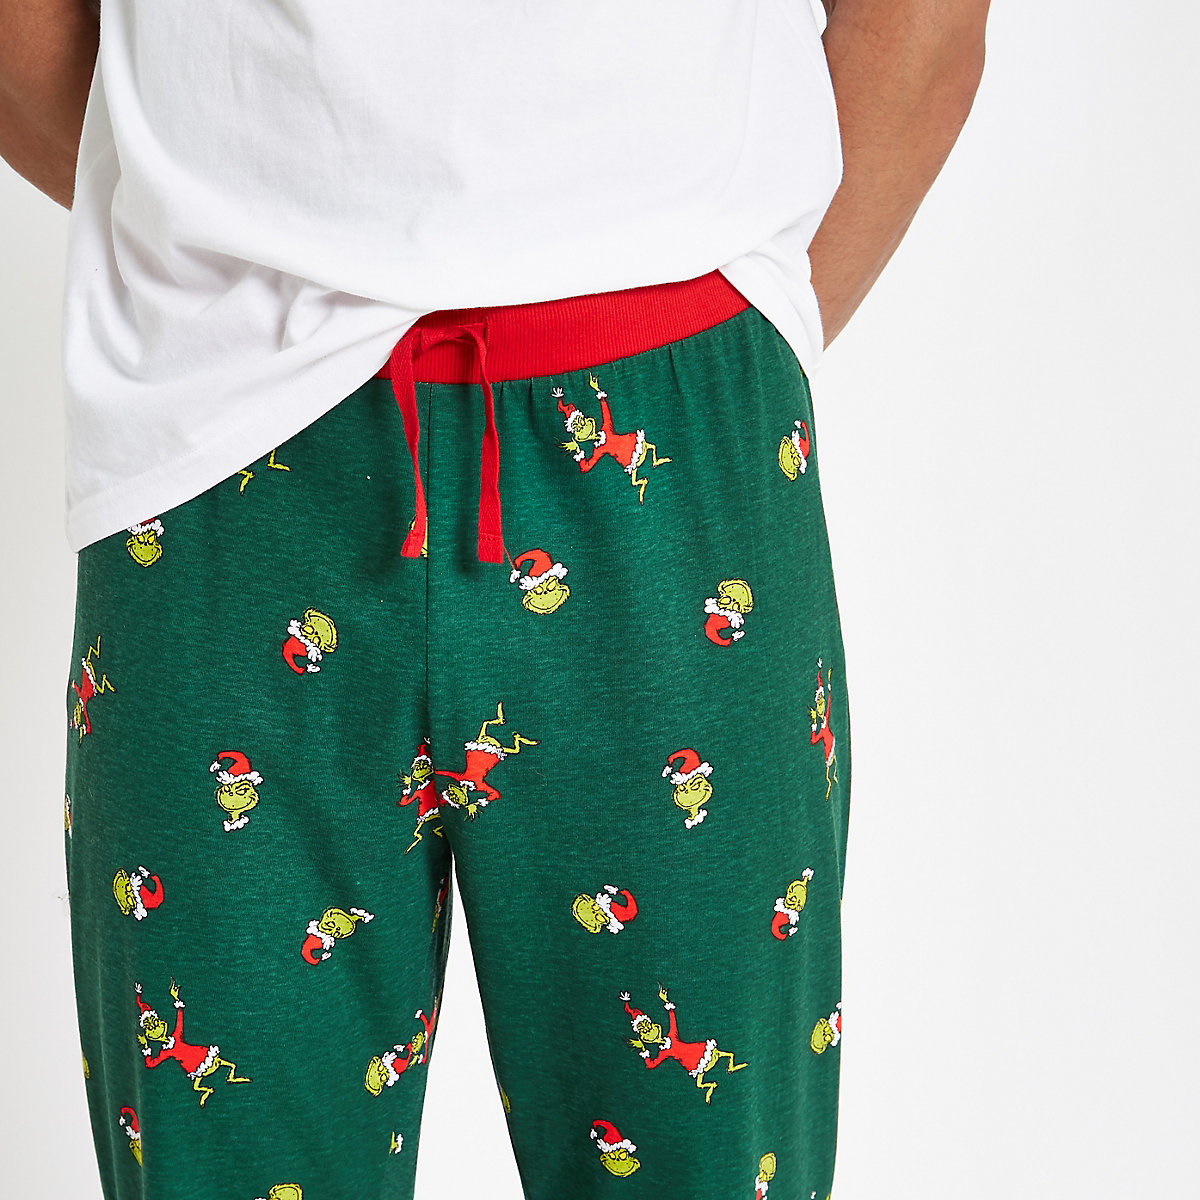 The Grinch Green Pajama Set Pajamas Loungewear Pajamas Men